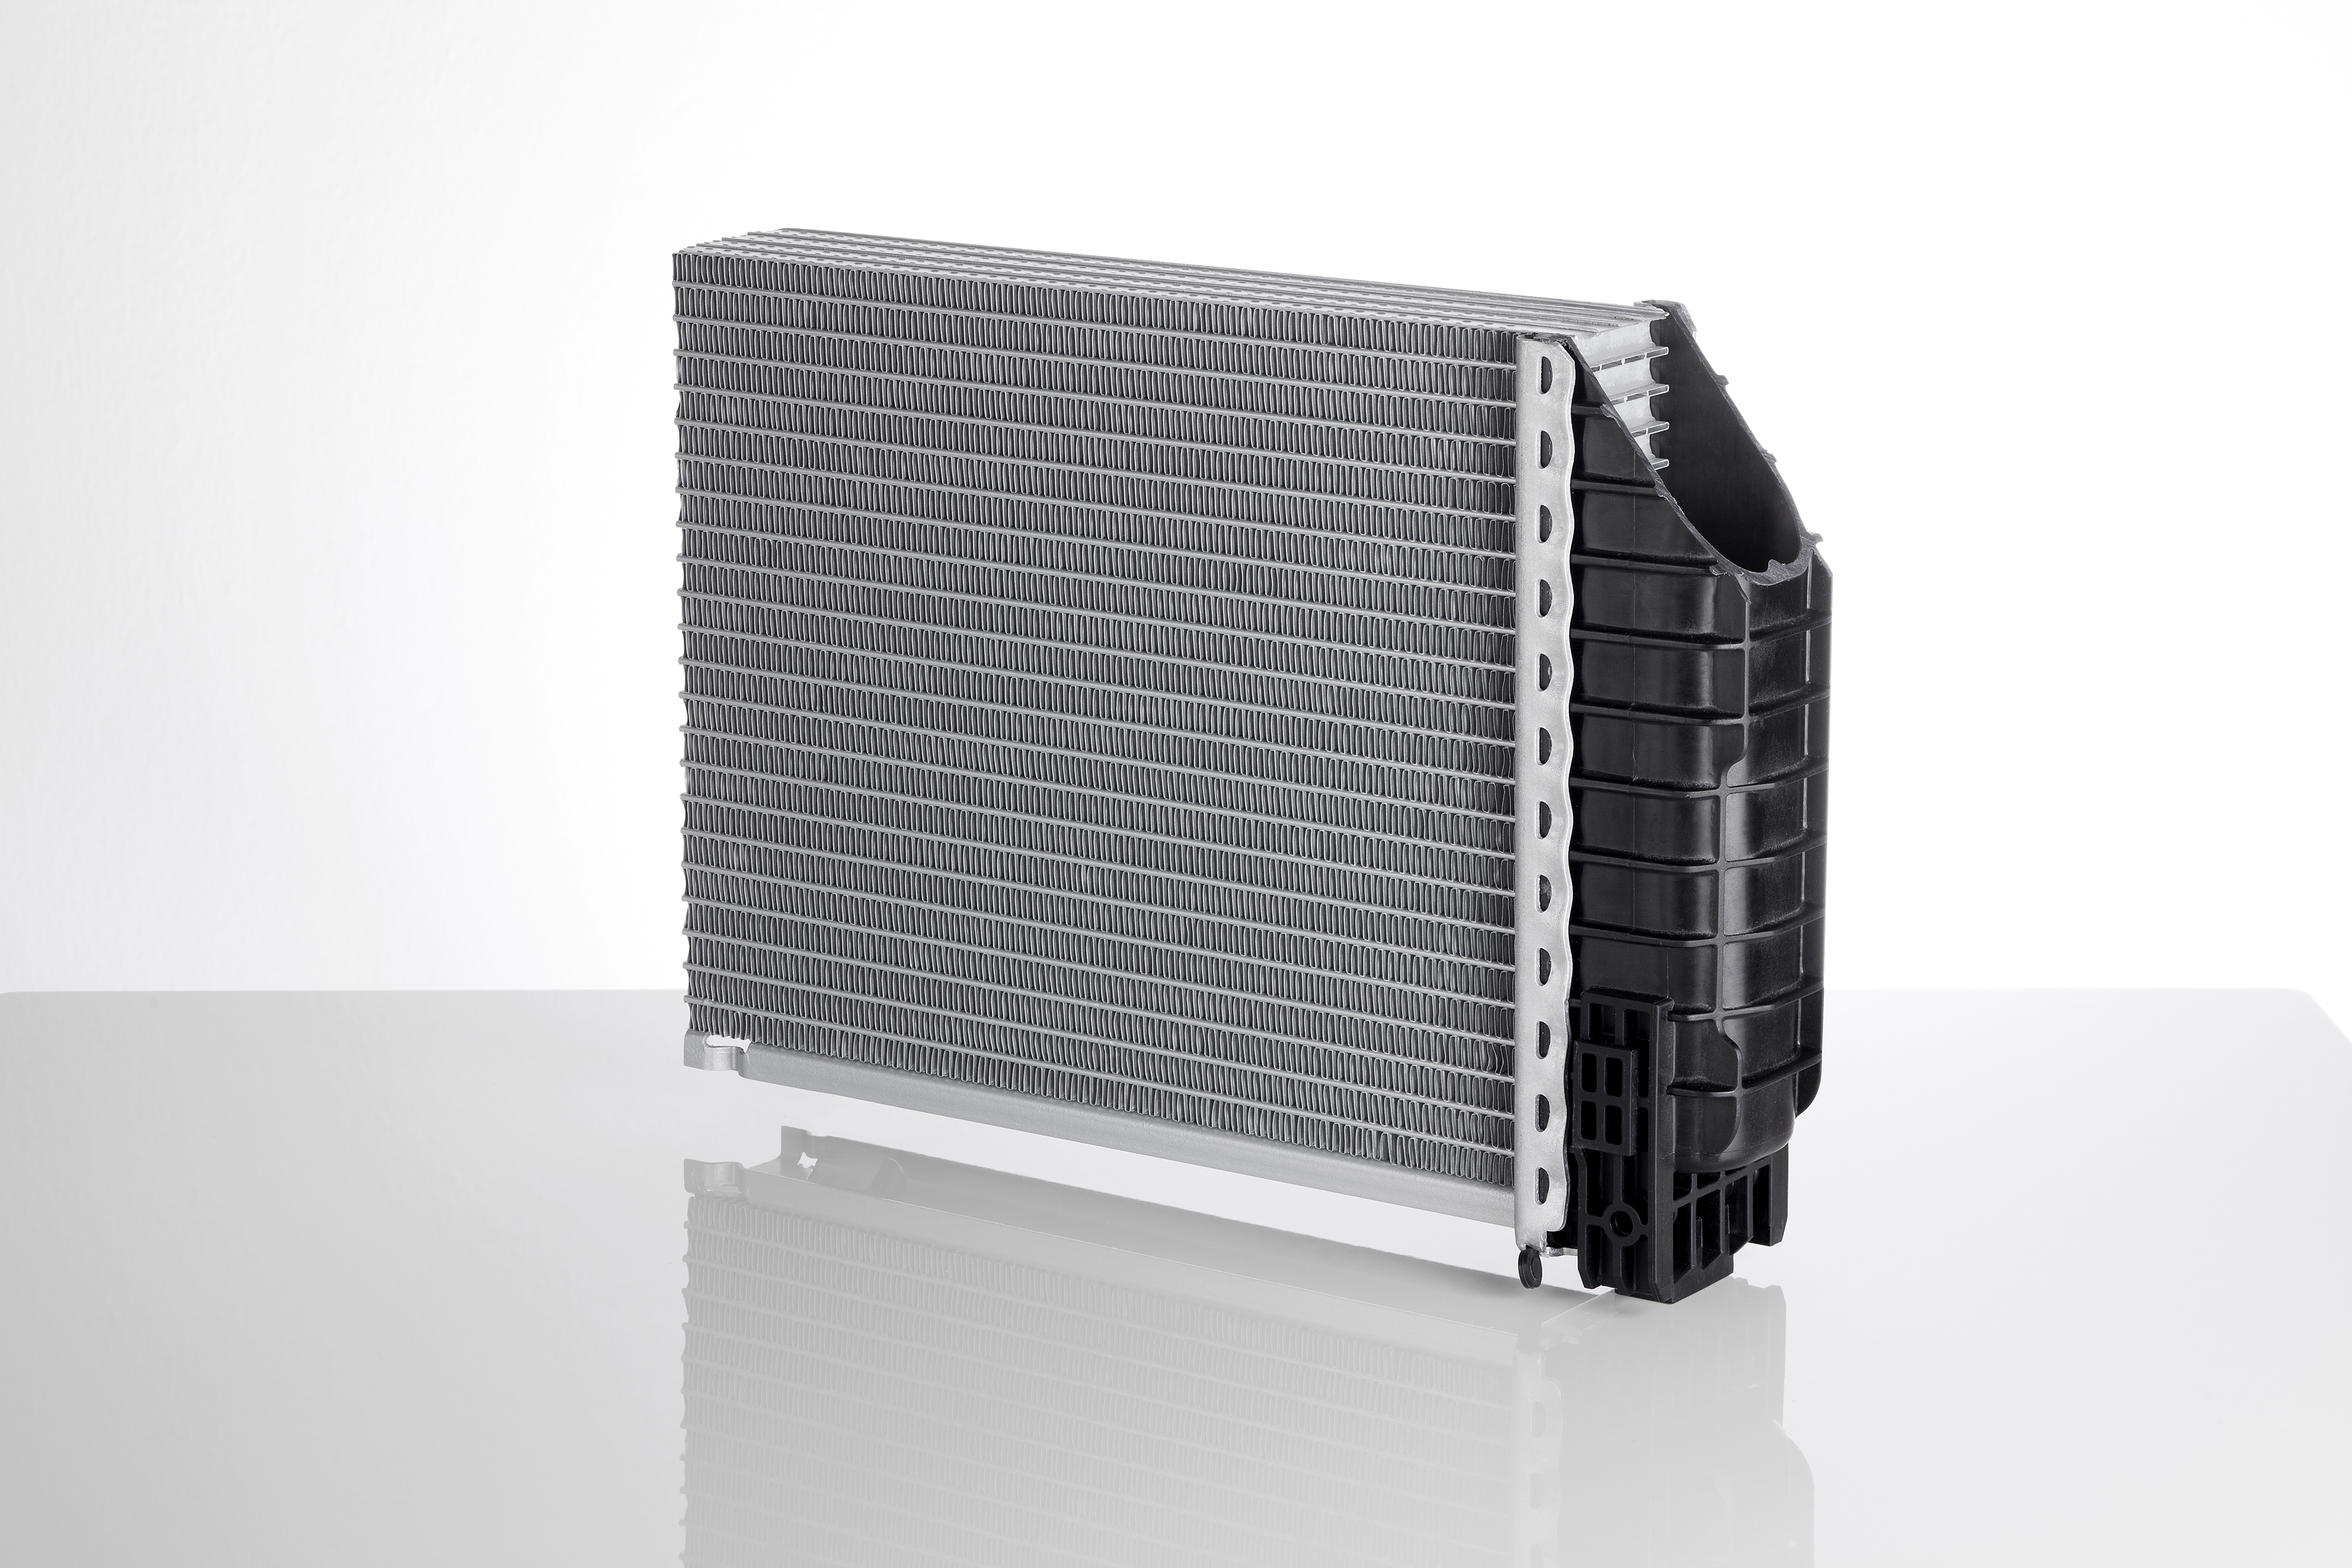 Mahle Group Lightweight Design For Commercial Vehicle